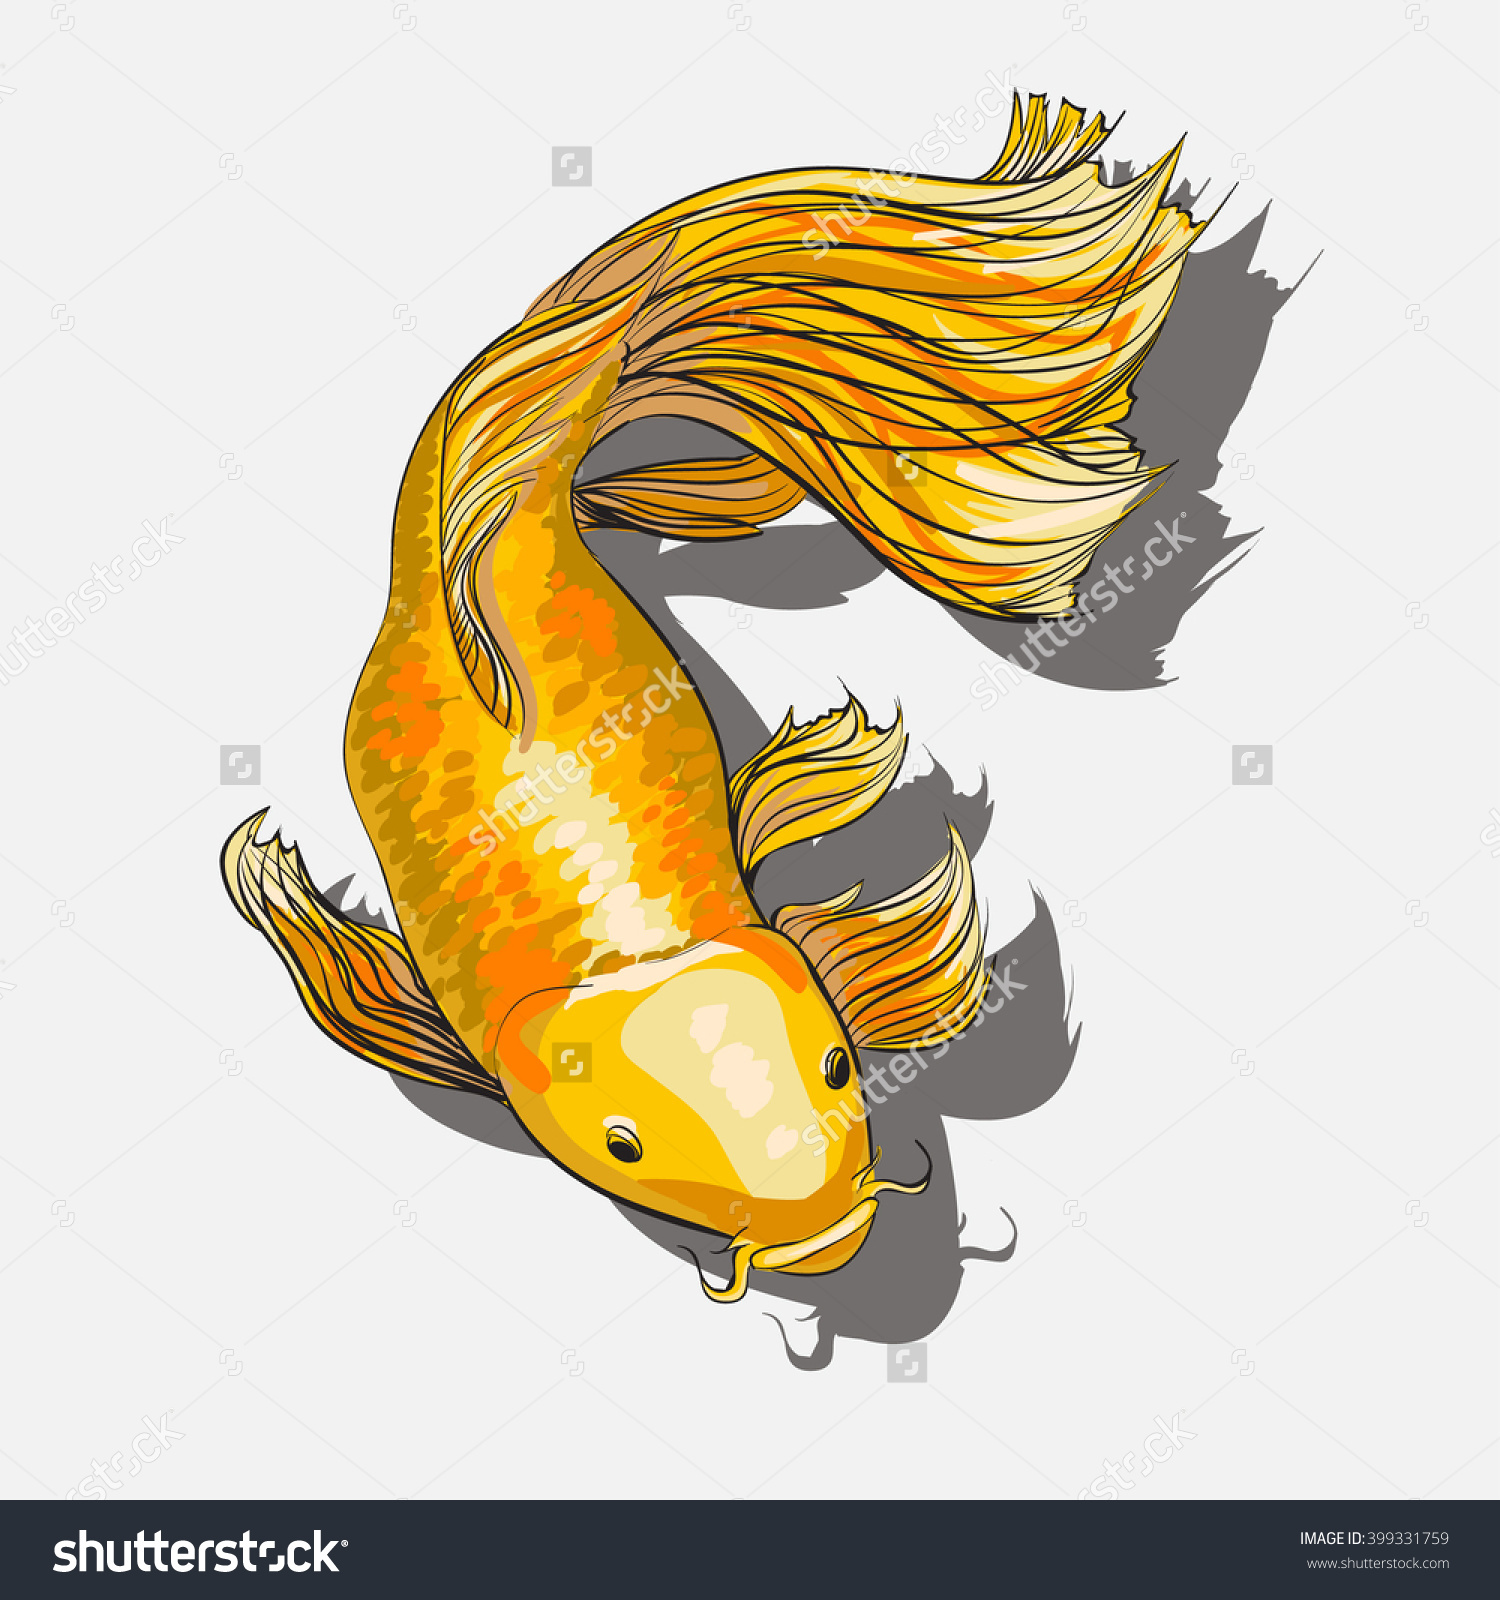 Gold Koi Fish Tattoo Color Style Stock Vector 399331759.